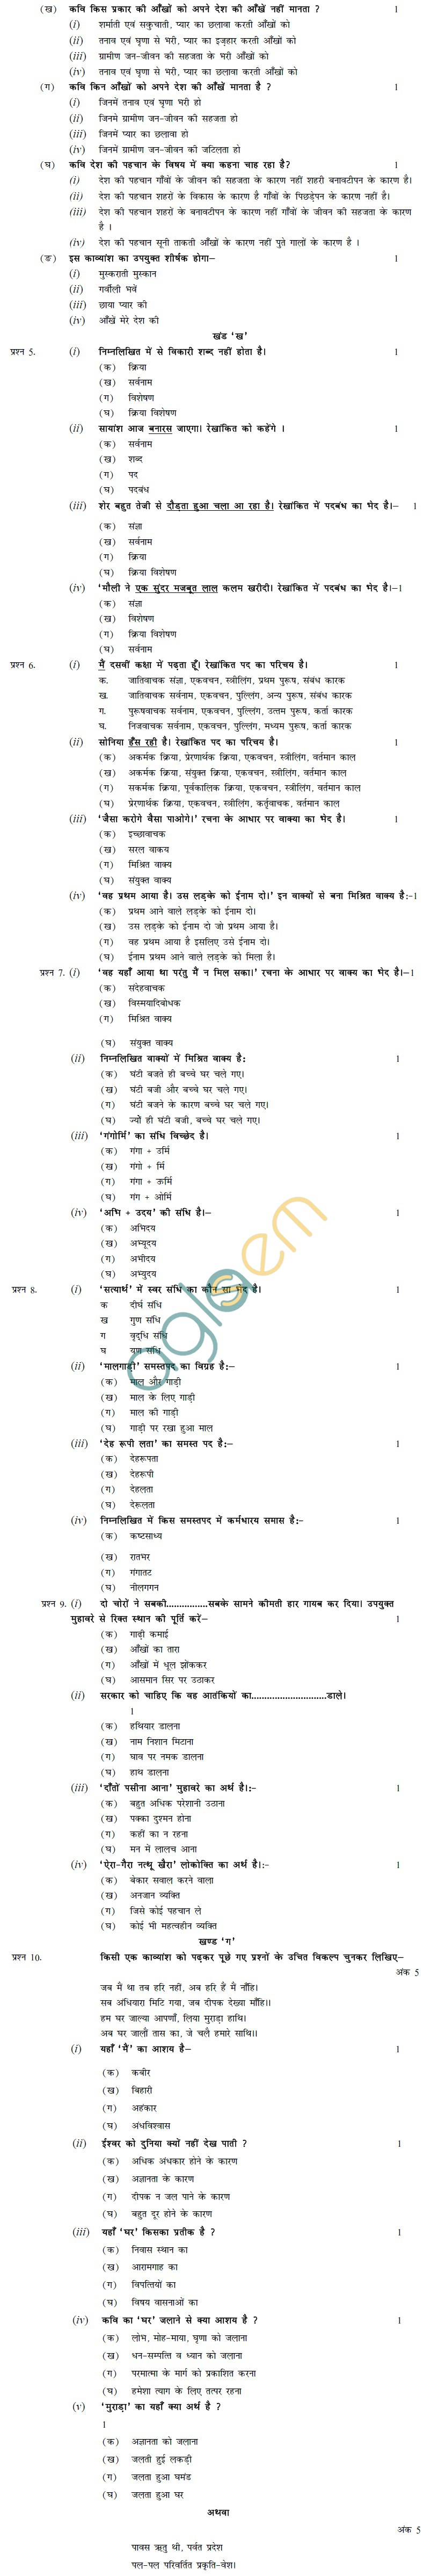 CBSE Class 9 Social Science Question Paper SA1 2012 3